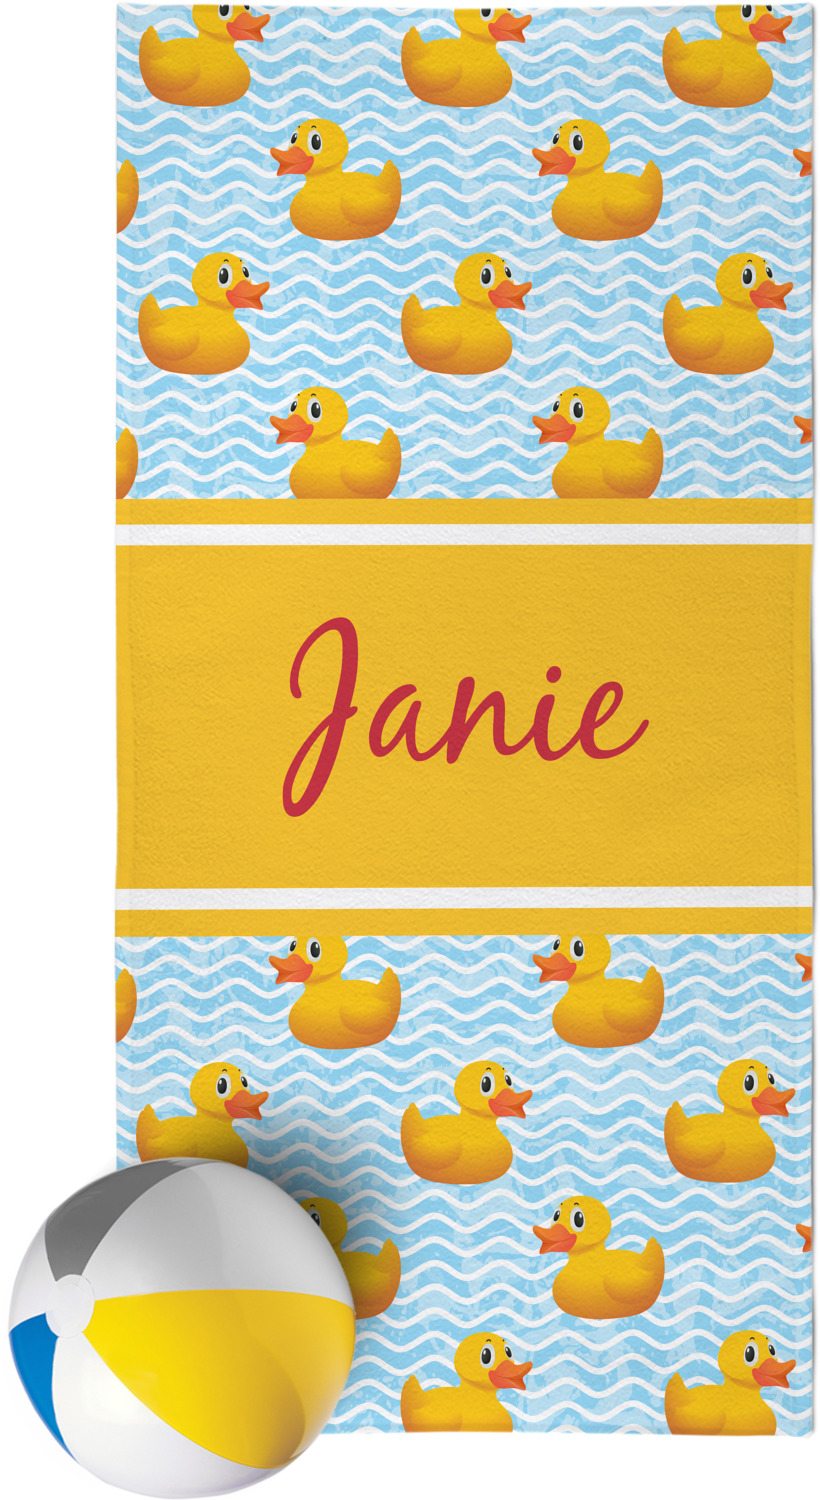 Rubber Duckie Beach Towel Personalized